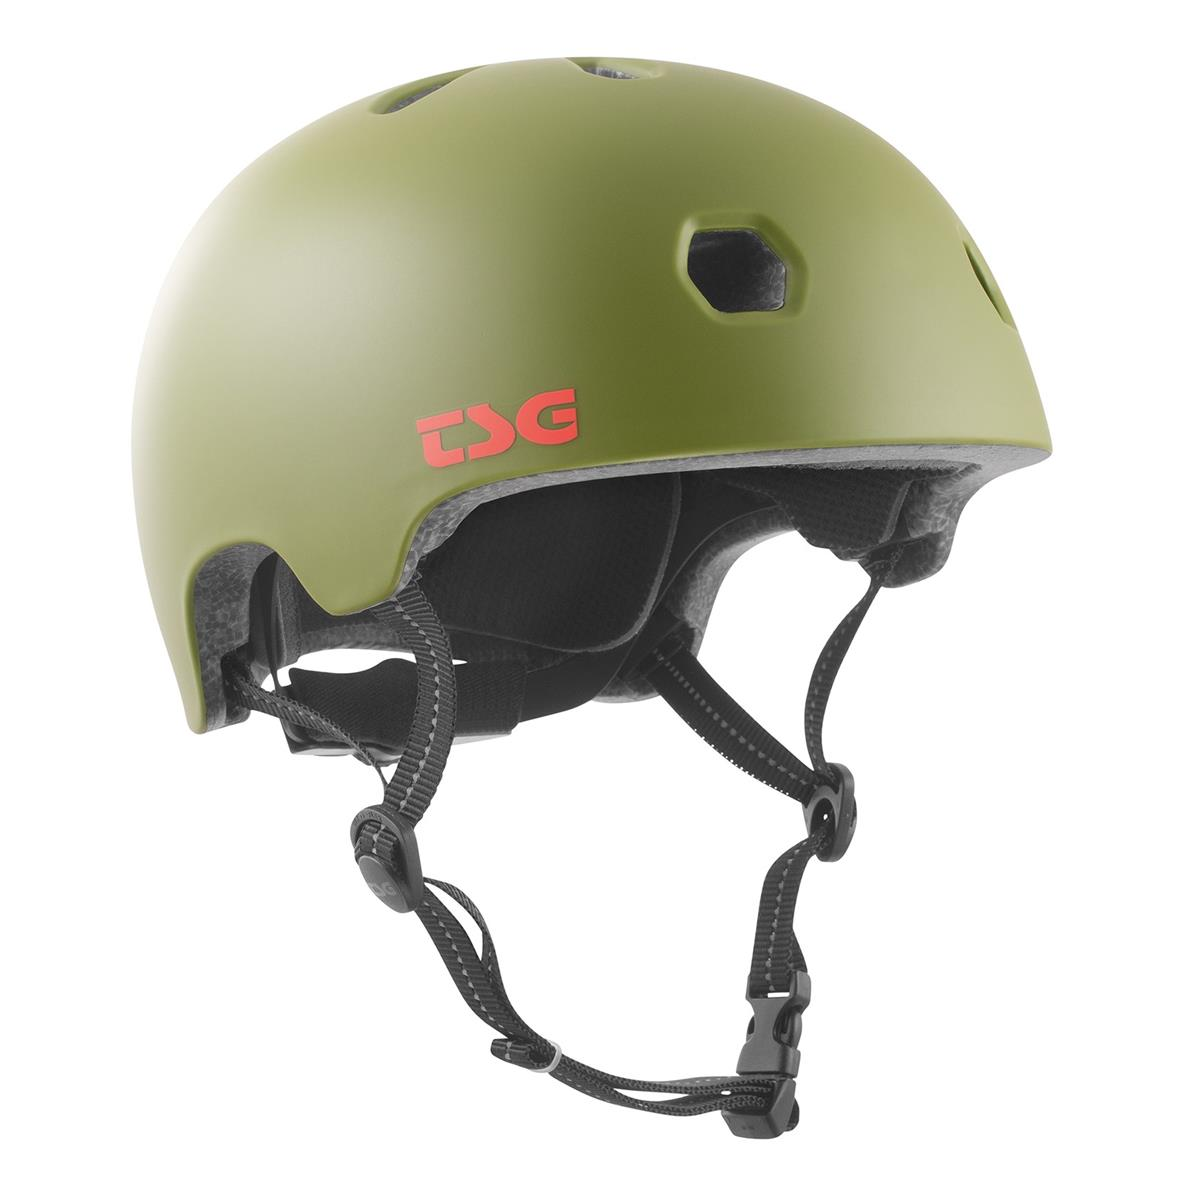 TSG BMX/Dirt Helm Meta Solid Color - Satin Olive